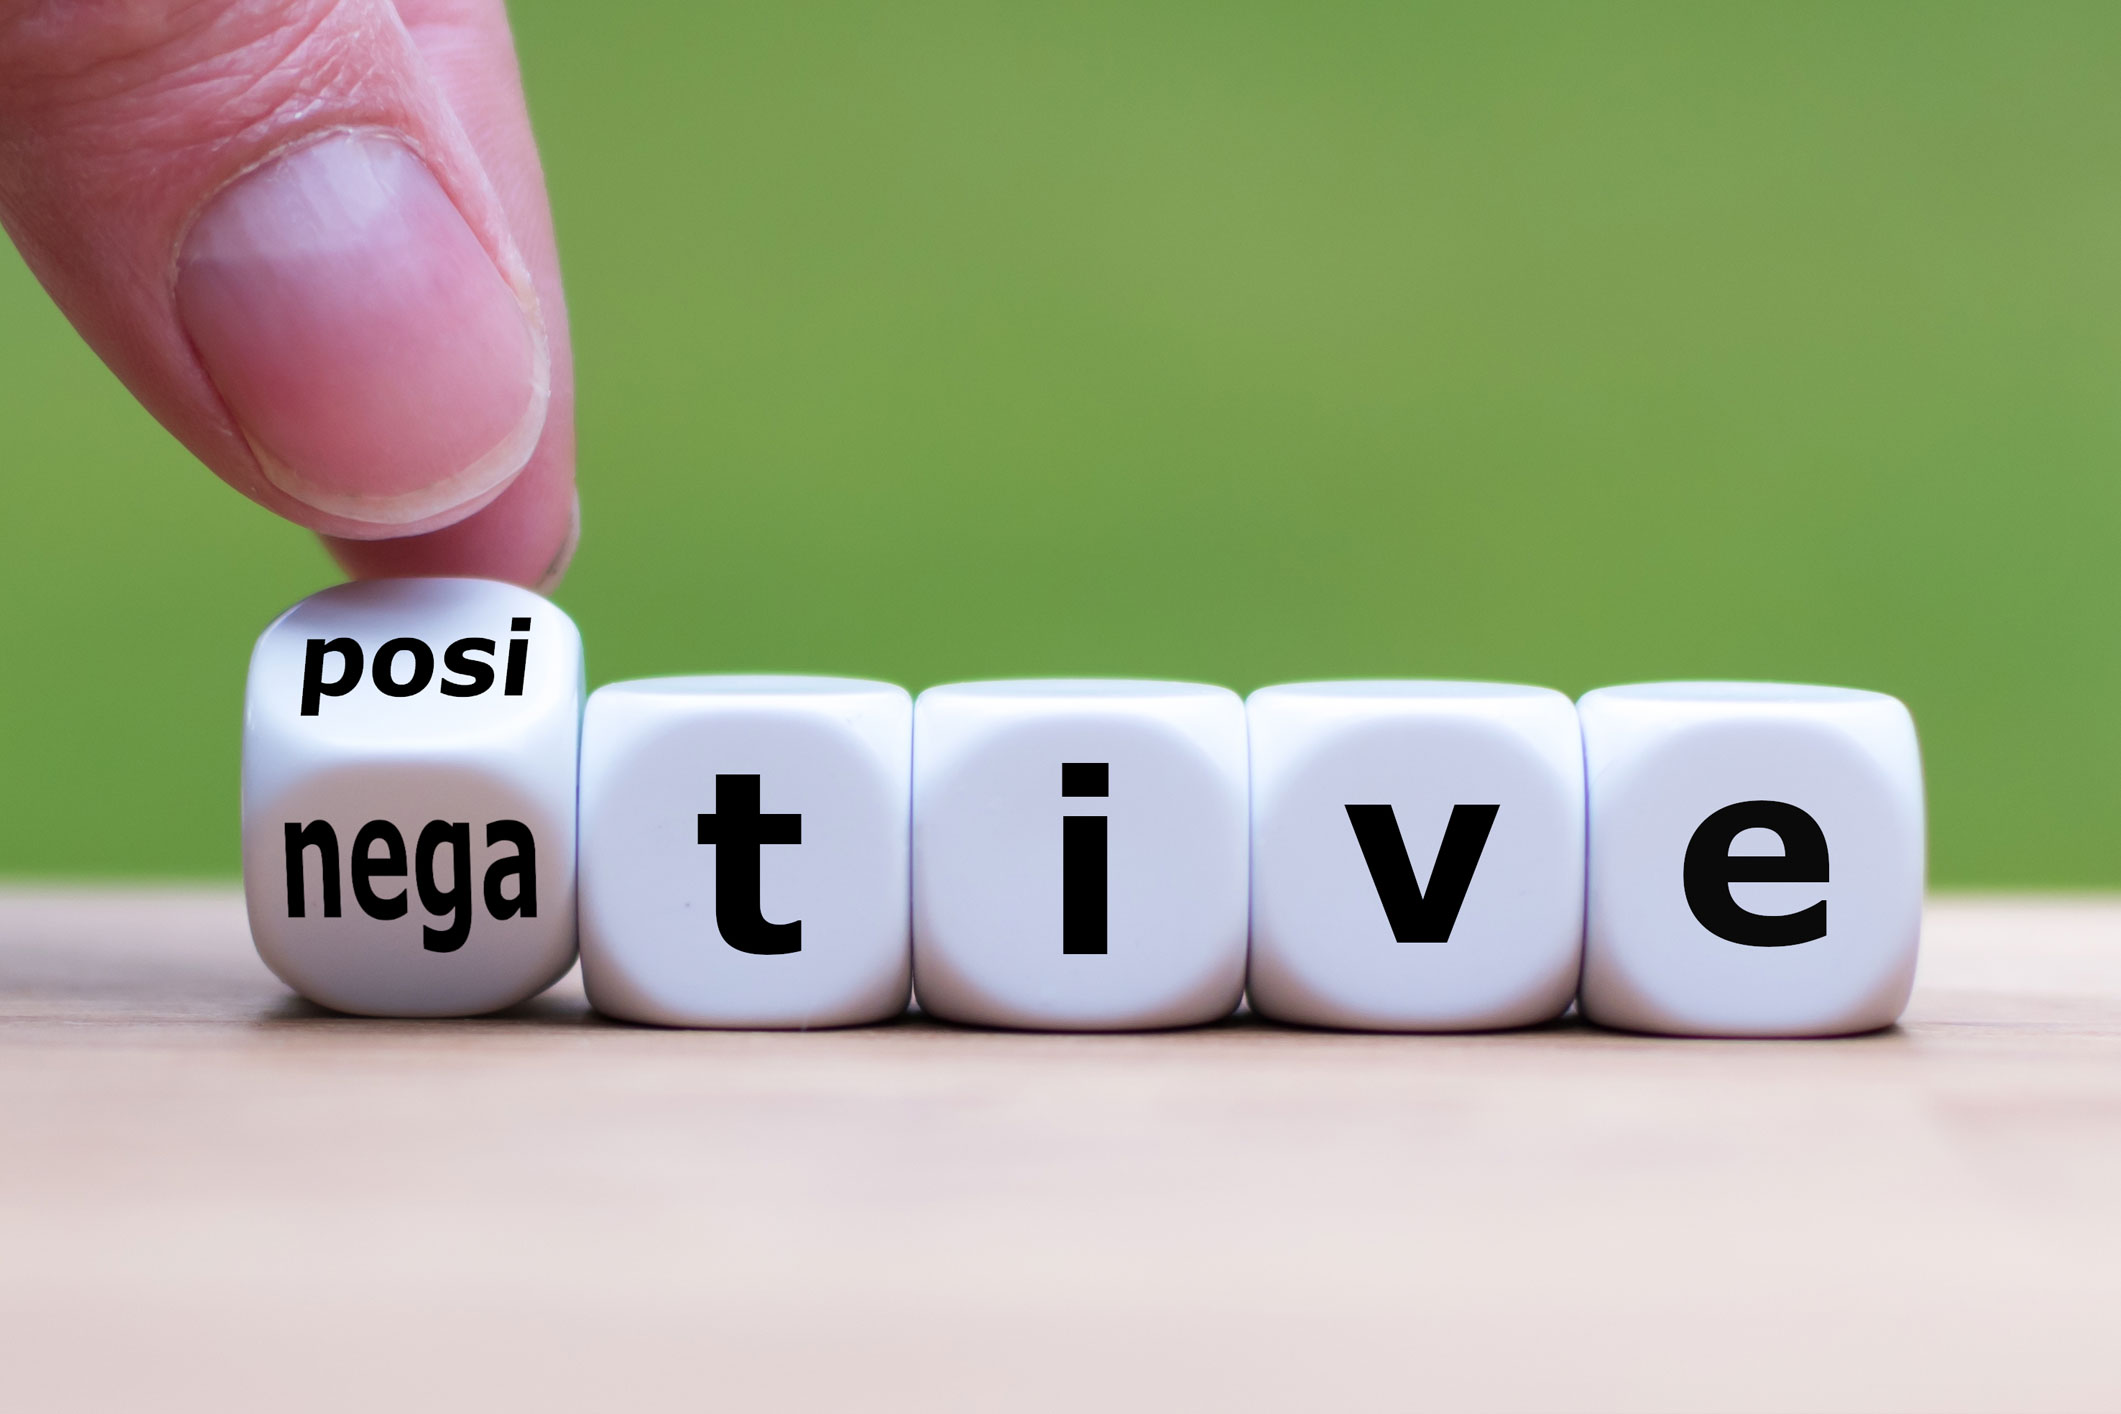 """Hand turns a dice and changes the expression """"negative"""" to """"positive""""."""